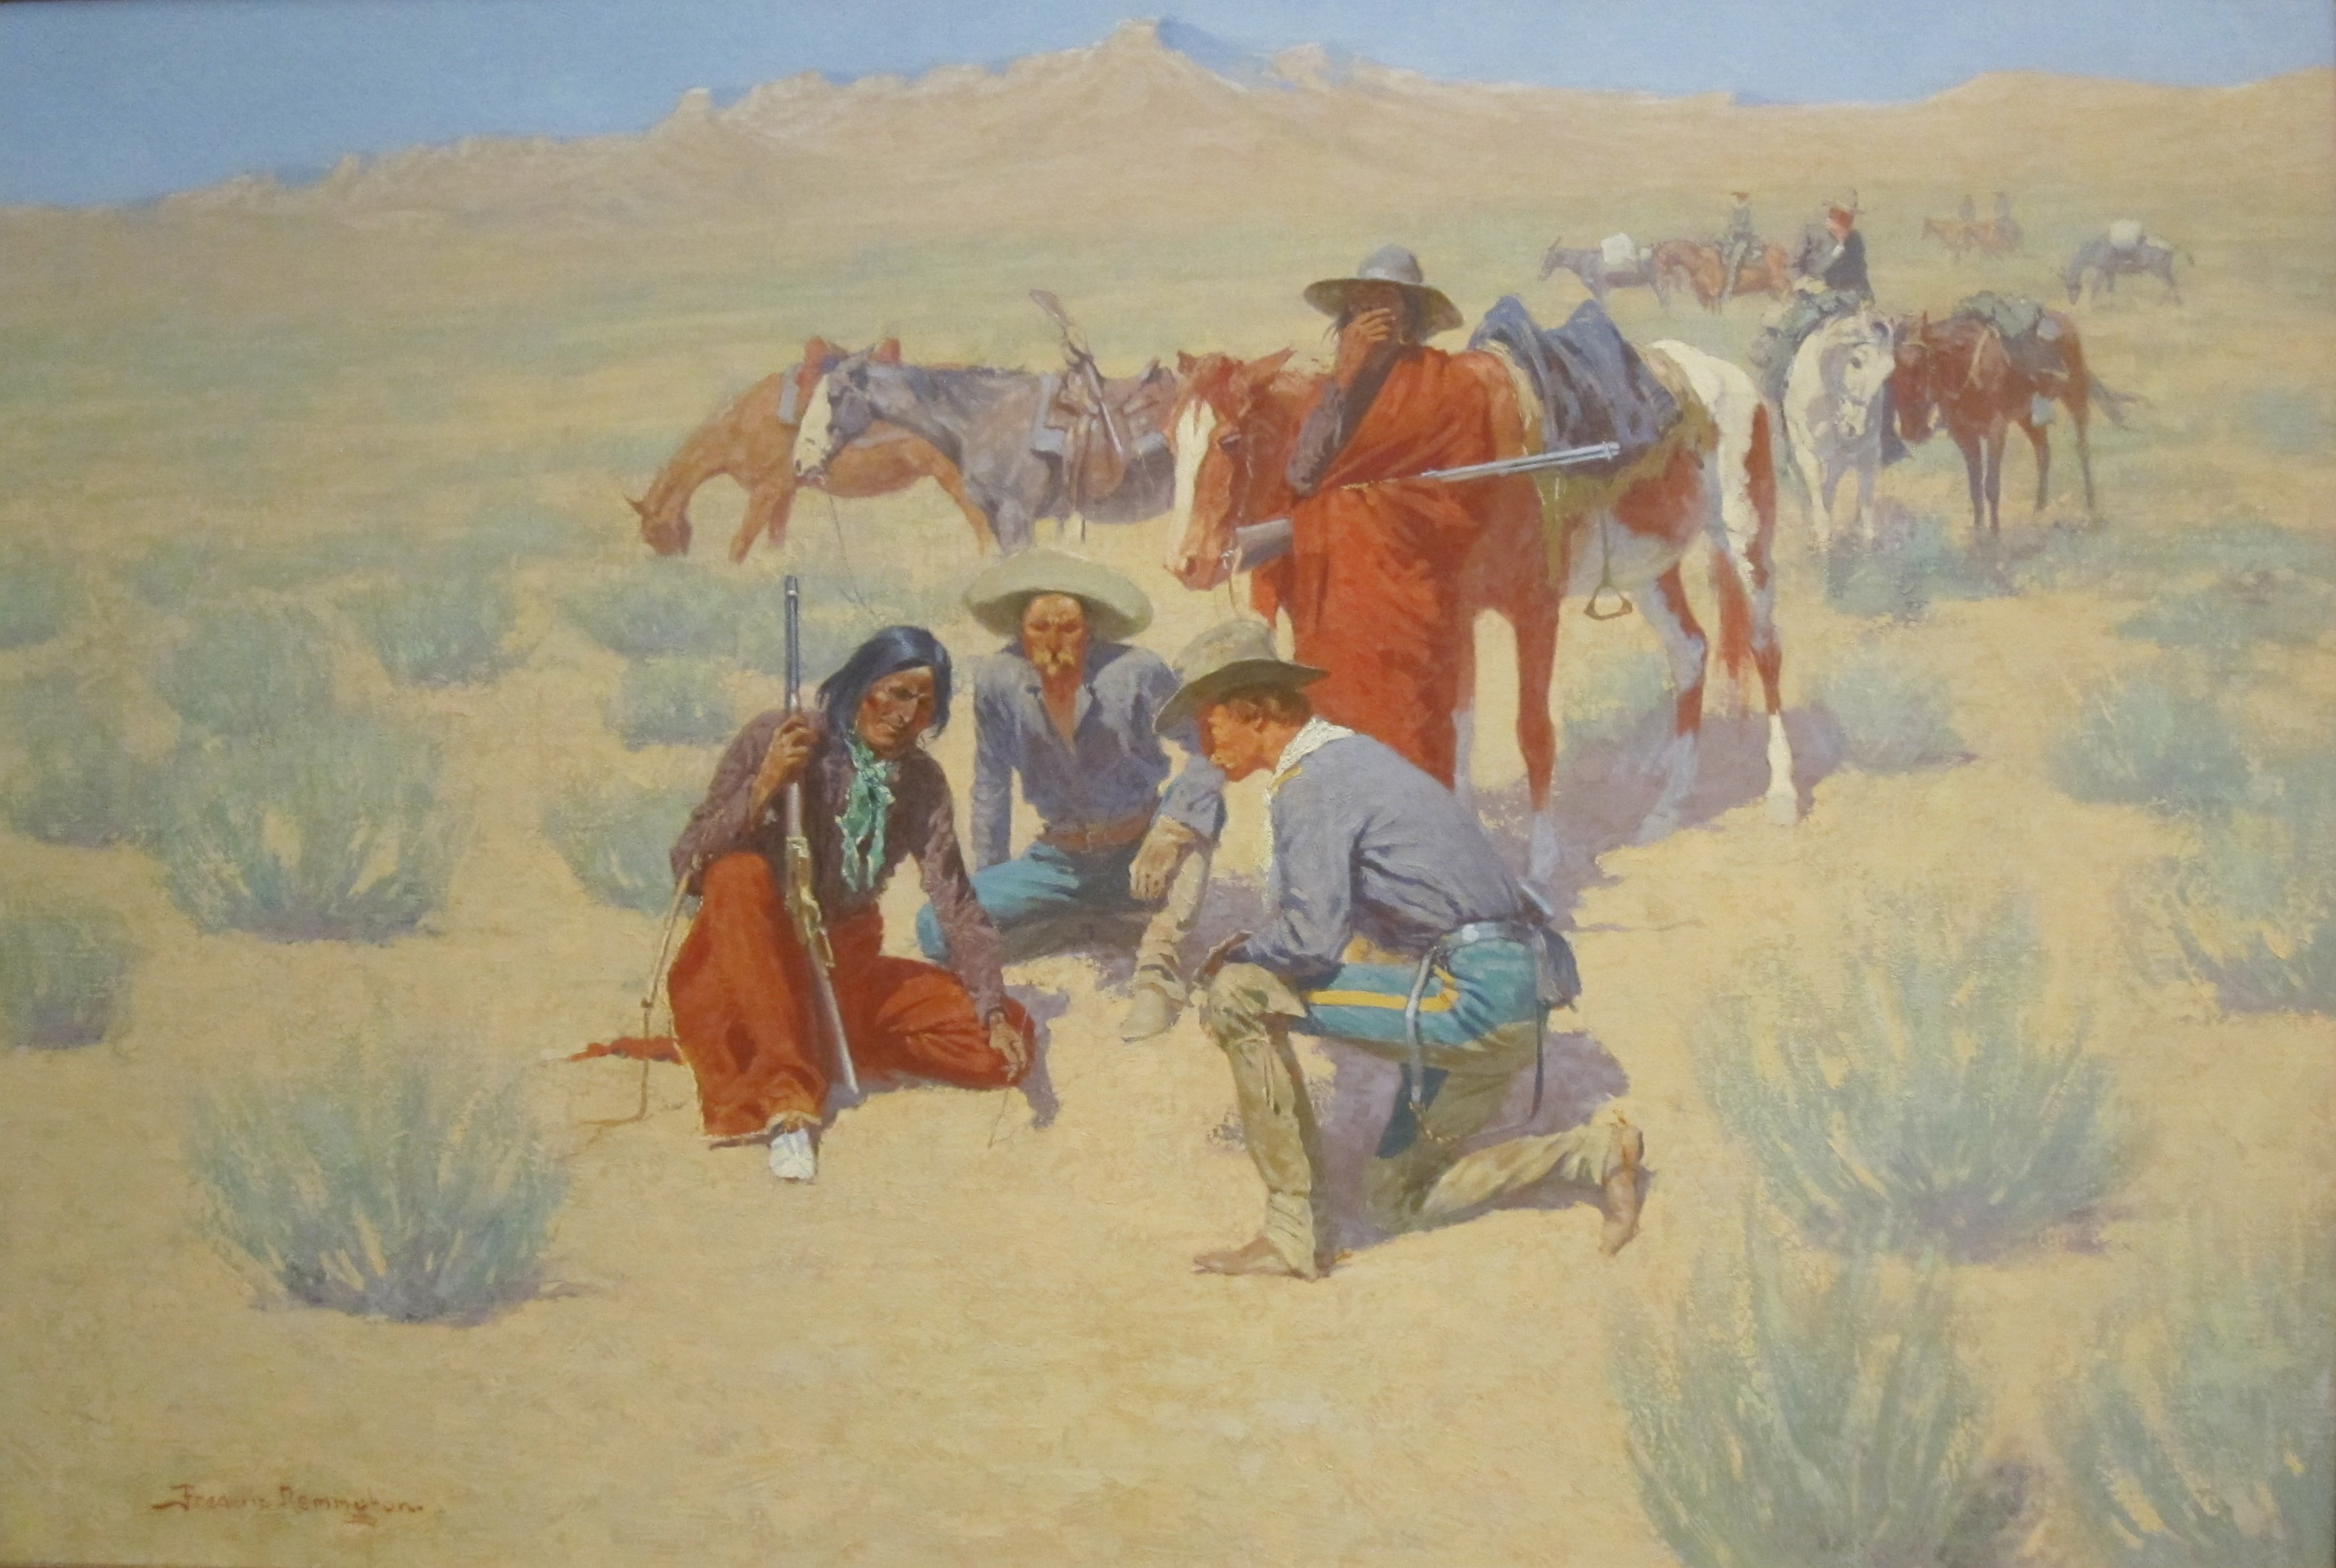 File A Map In The Sand By Frederic Remington Cincinnati